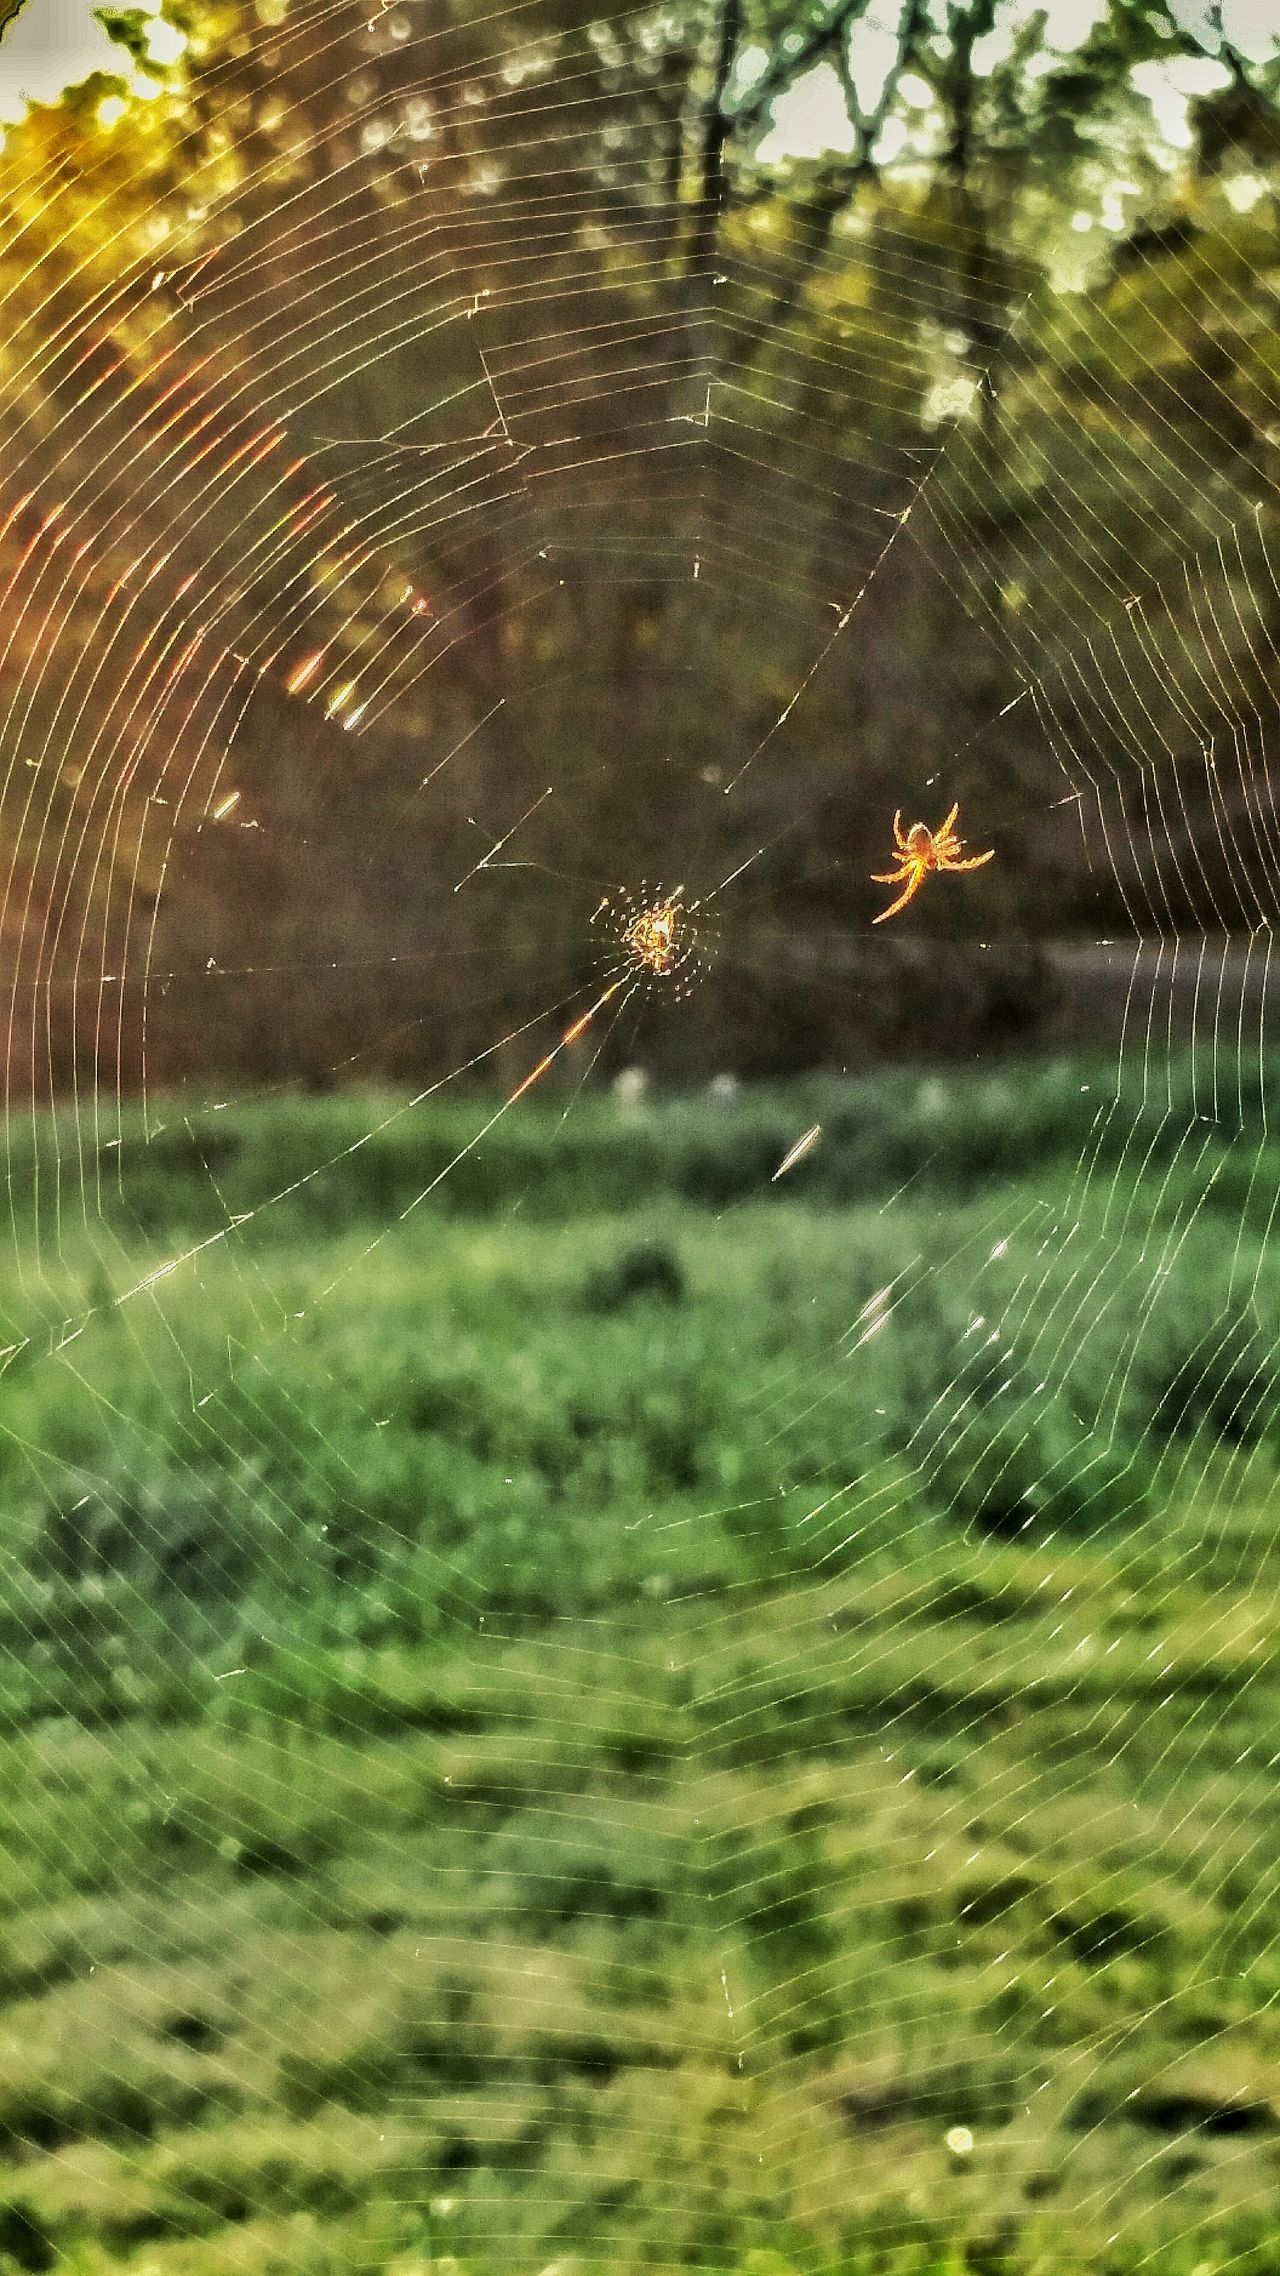 Spider Web Spider Animals In The Wild One Animal Animal Themes Nature No People Animal Wildlife Close-up Beauty In Nature Outdoors Day Insect Water Web Tree Design Patterns Sun Streaks Sunbeams Hanging Out Spider Web And Sunrise Trap Insect Home Insect Photography